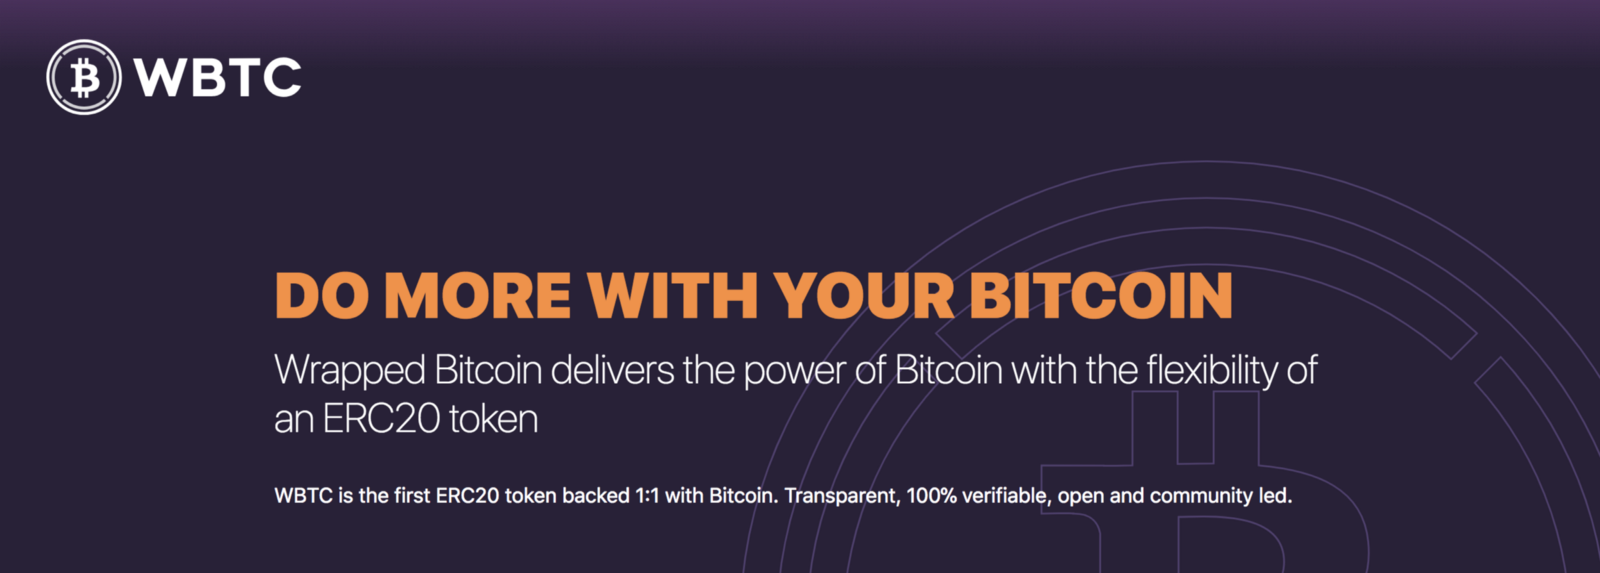 Introducing WBTC: The Power of Bitcoin with the Flexibility of ERC20